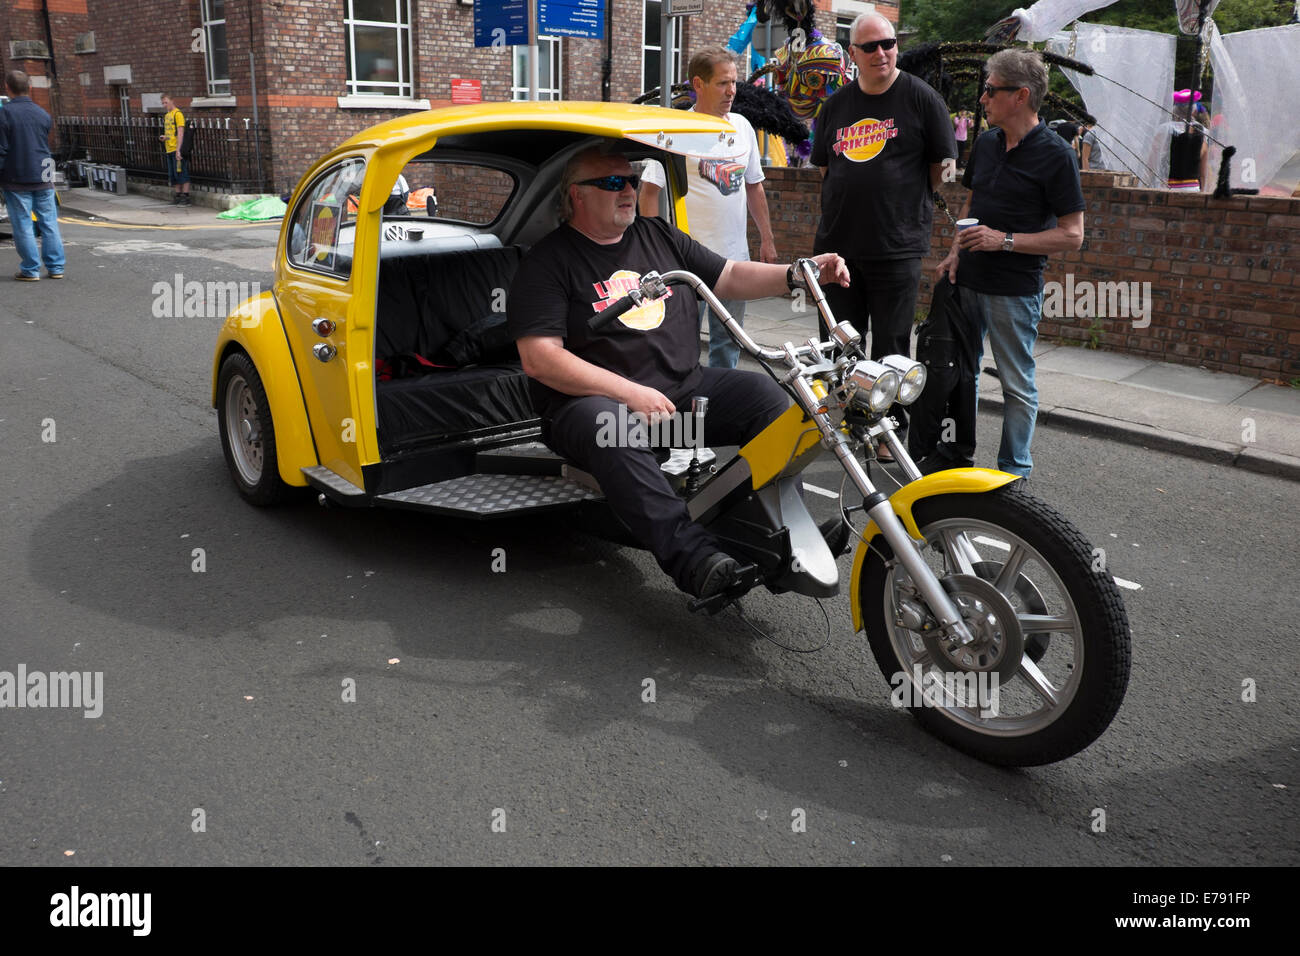 3 rad trike motorrad buggy vw k fer auto stockfoto bild 73342858 alamy. Black Bedroom Furniture Sets. Home Design Ideas